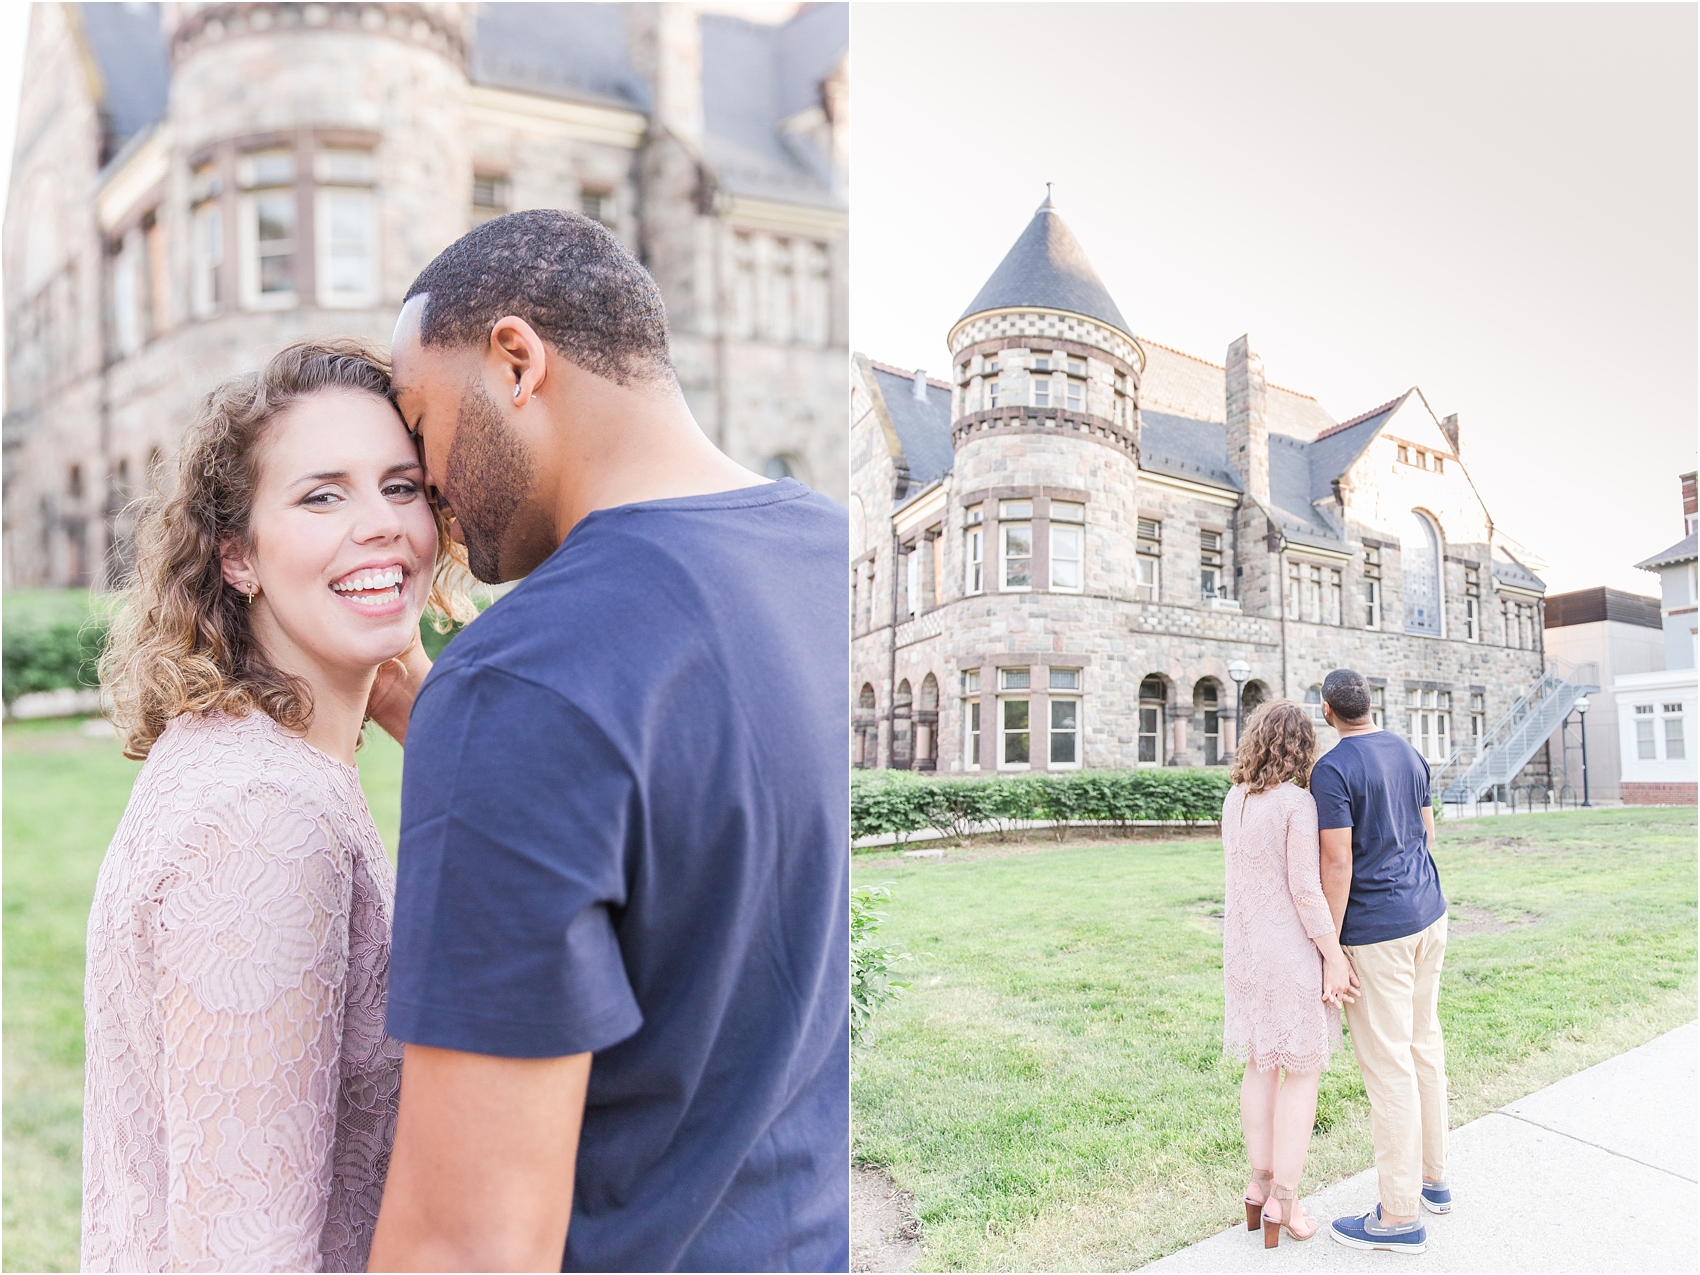 romantic-fun-university-of-michigan-engagement-photos-in-ann-arbor-mi-by-courtney-carolyn-photography_0015.jpg